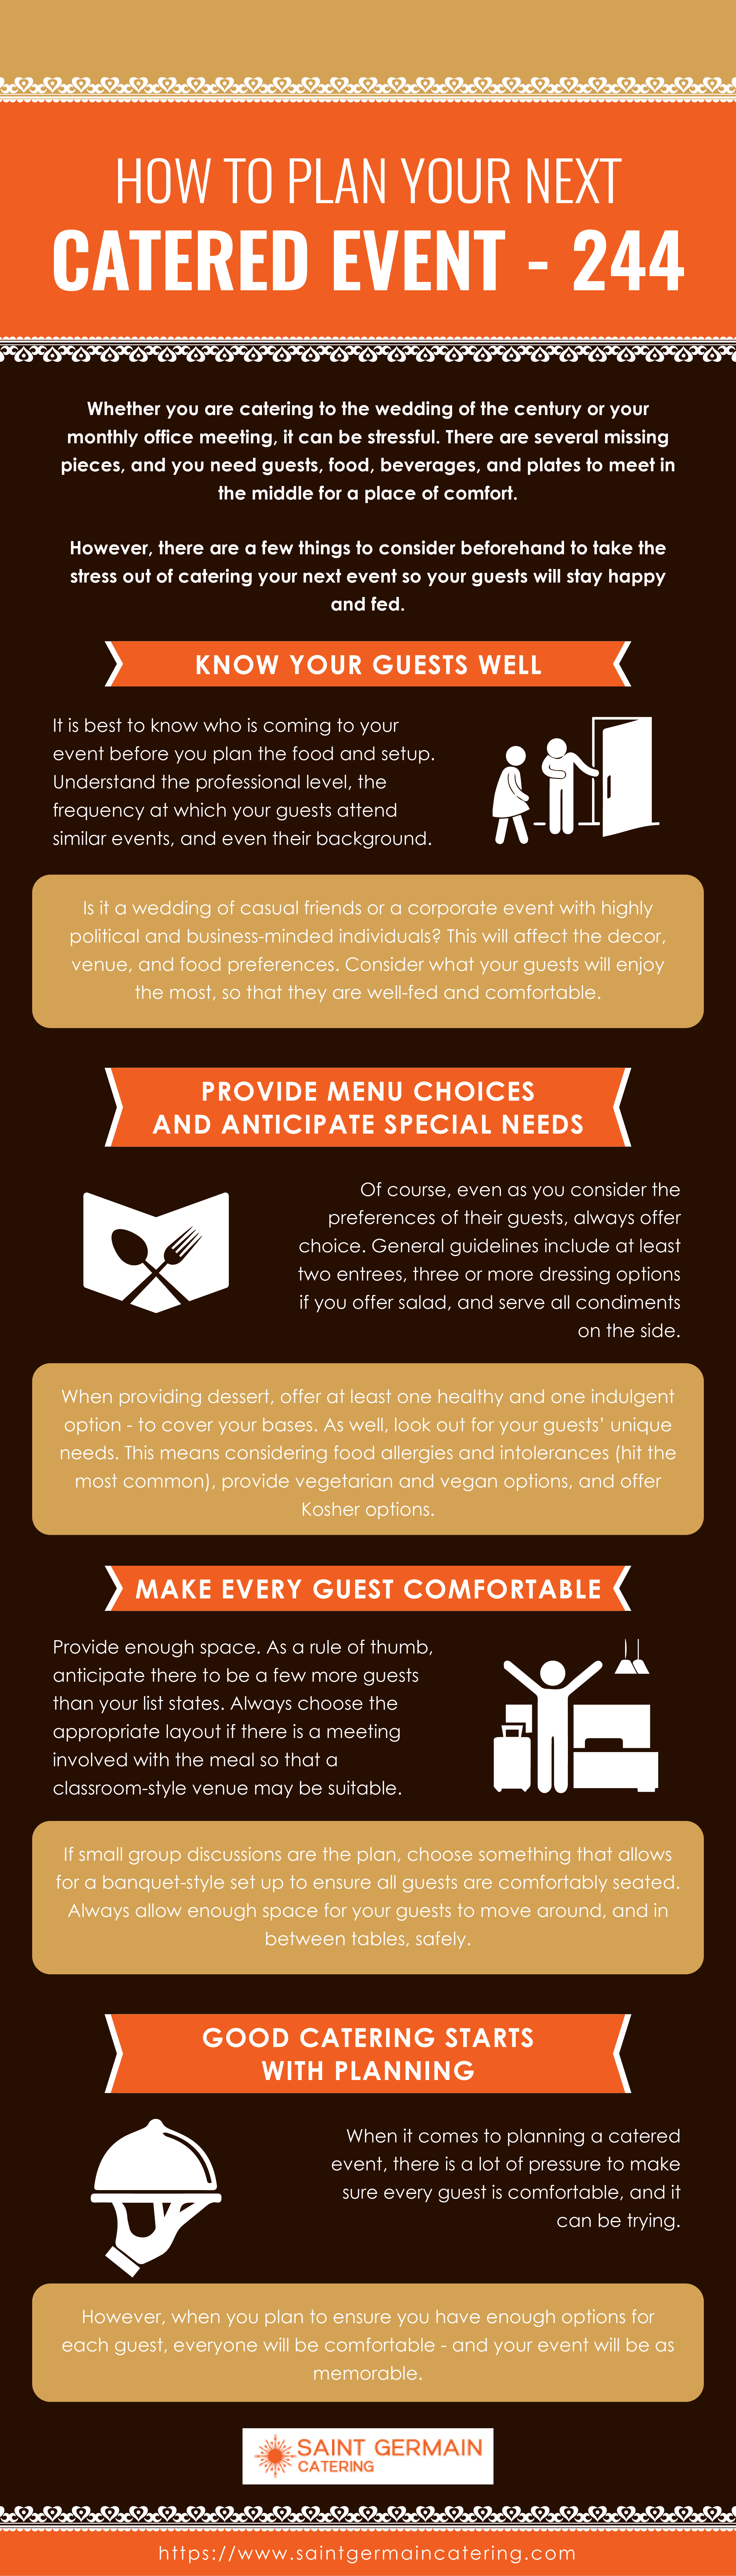 How To Plan Your Next Catered Event - 244